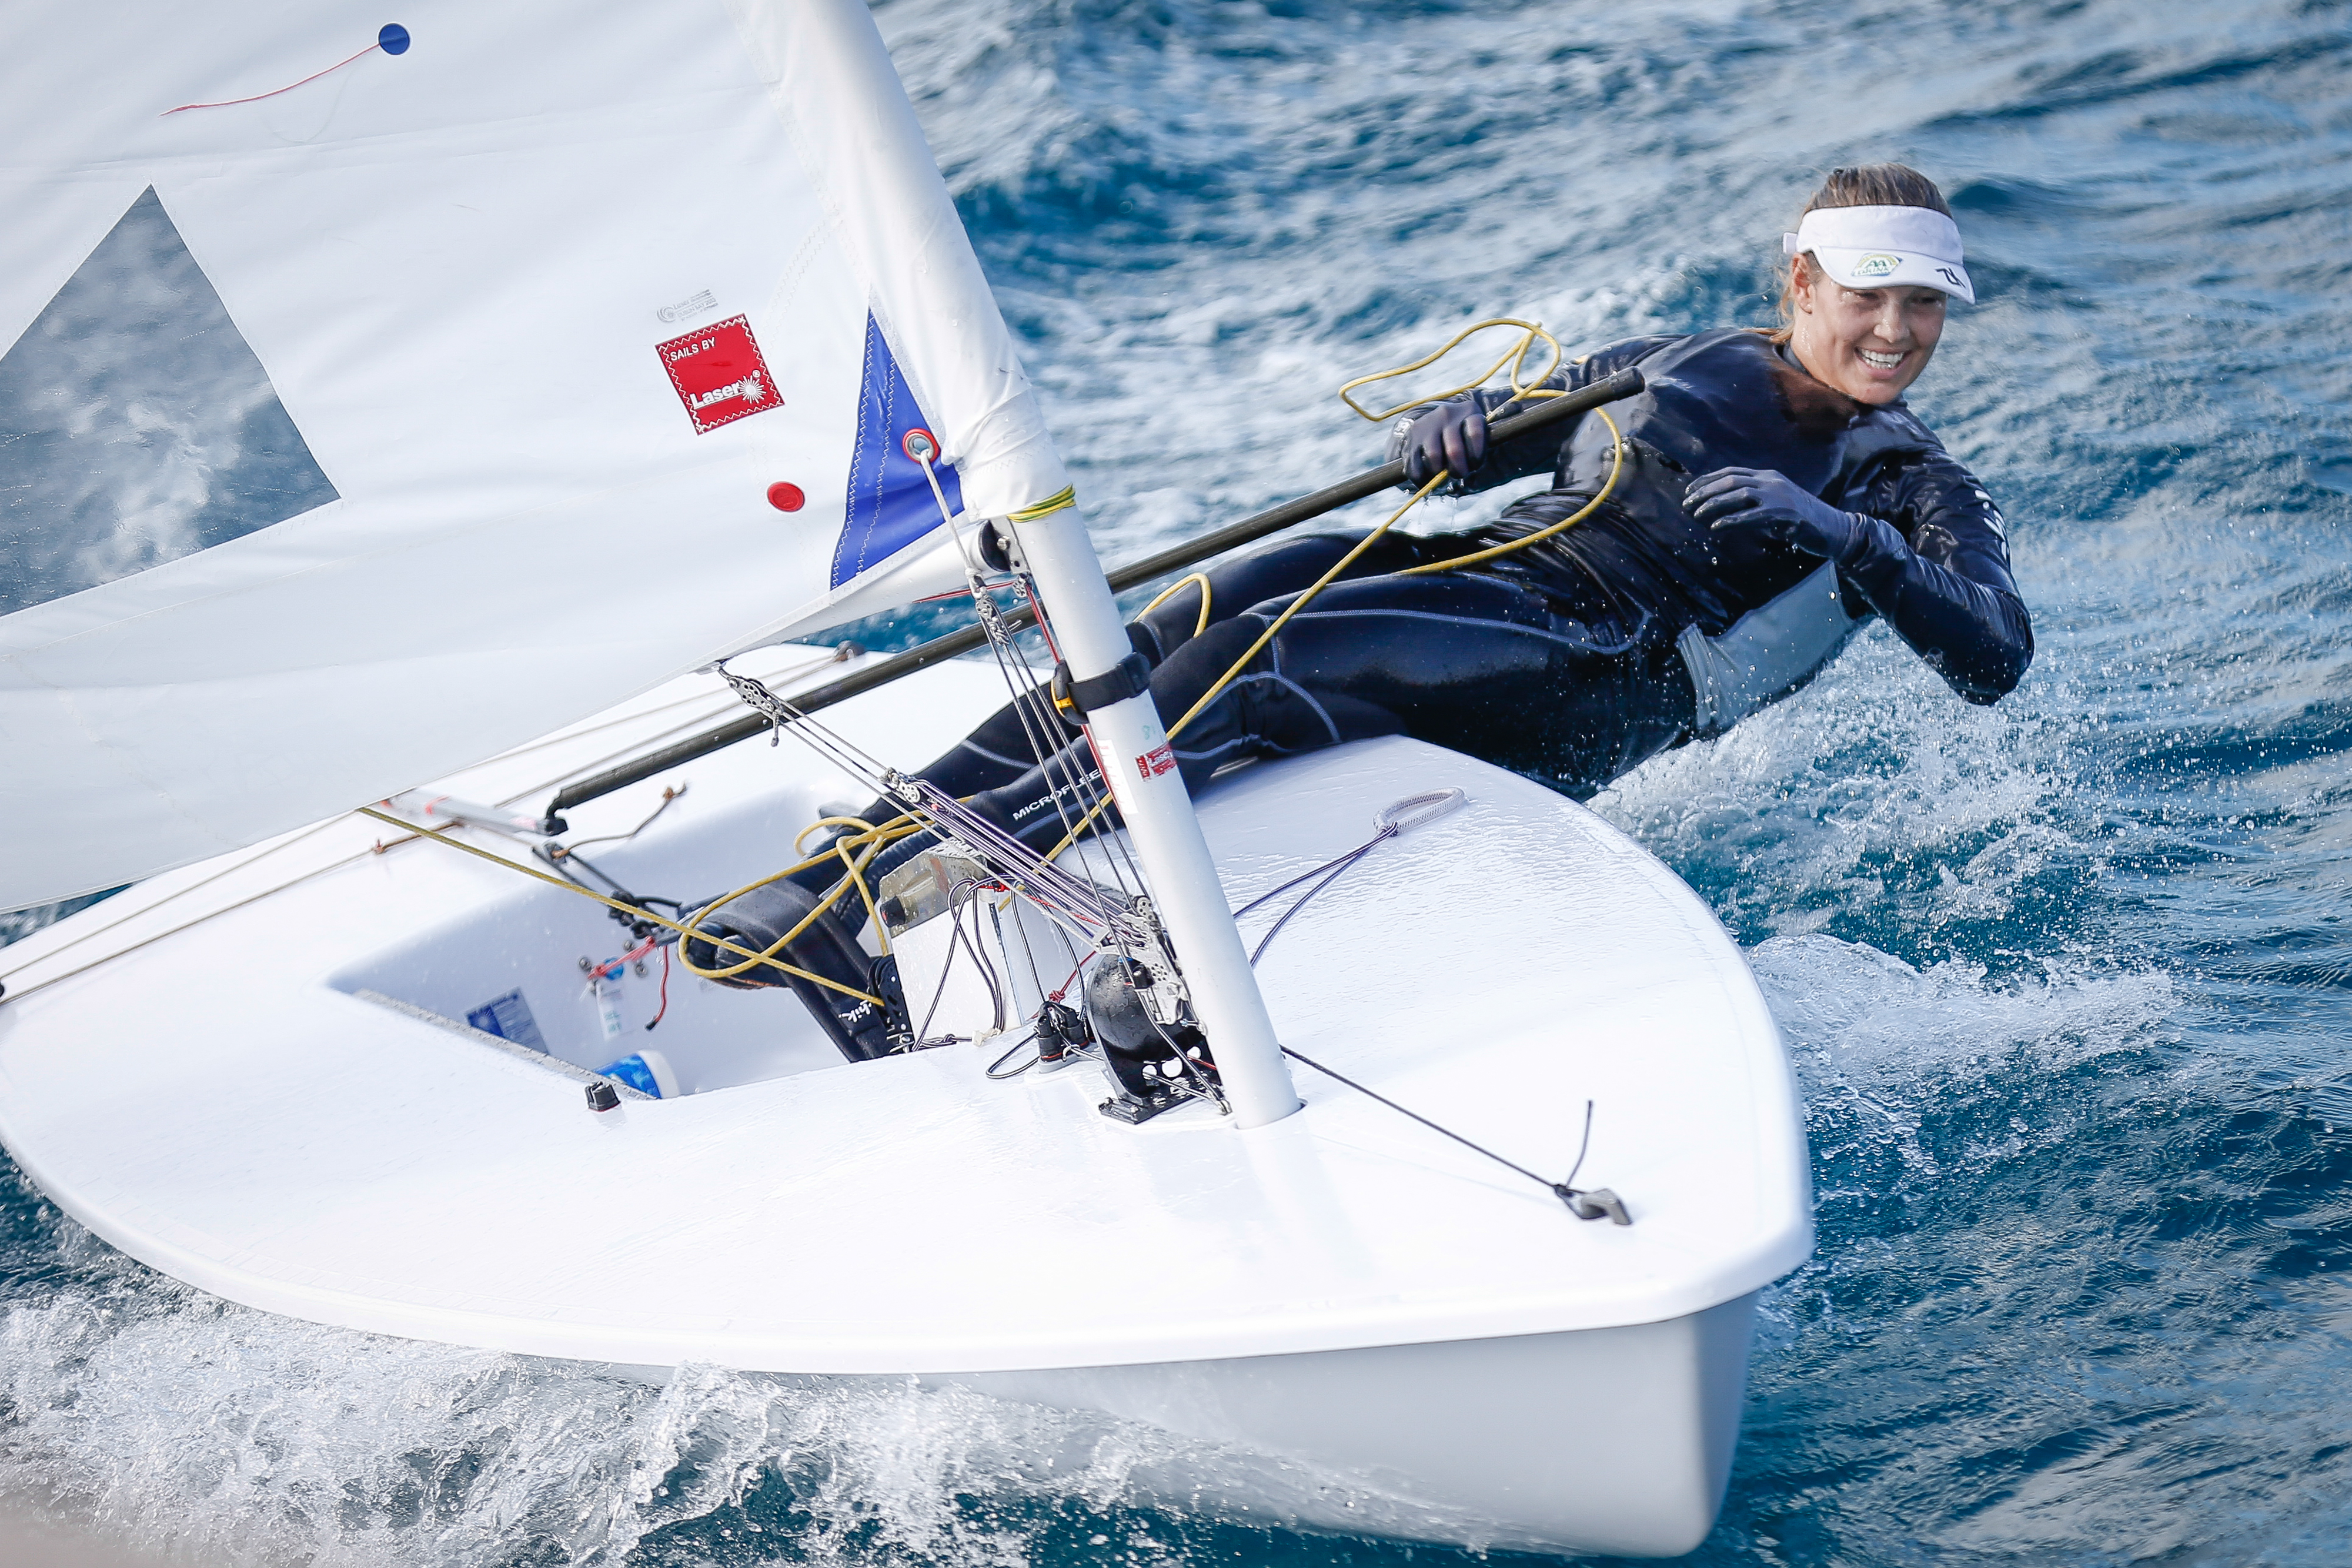 20131116 - LANZAROTE, SPAIN: Sailor Evi Van Acker pictured during a training session at the BOIC-COIB Belgian Olympic Committee sports camp, Saturday 16 November 2013, in Lanzarote, Spain. BELGA PHOTO BRUNO FAHY